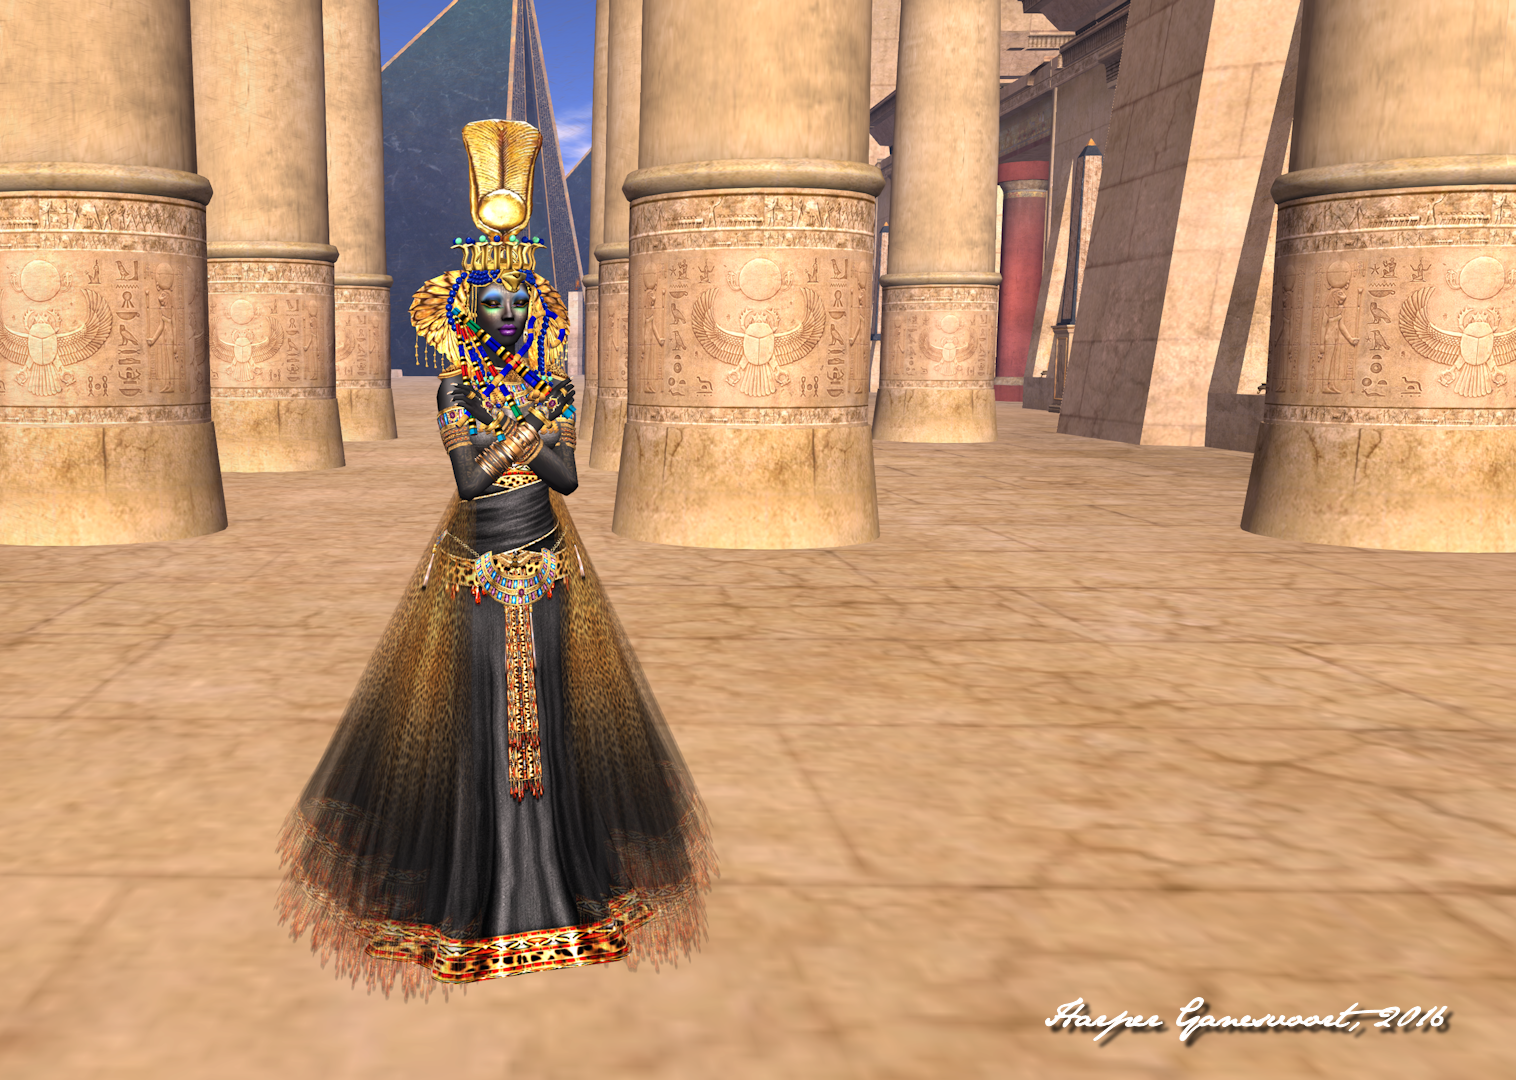 The Blessing of Anubis